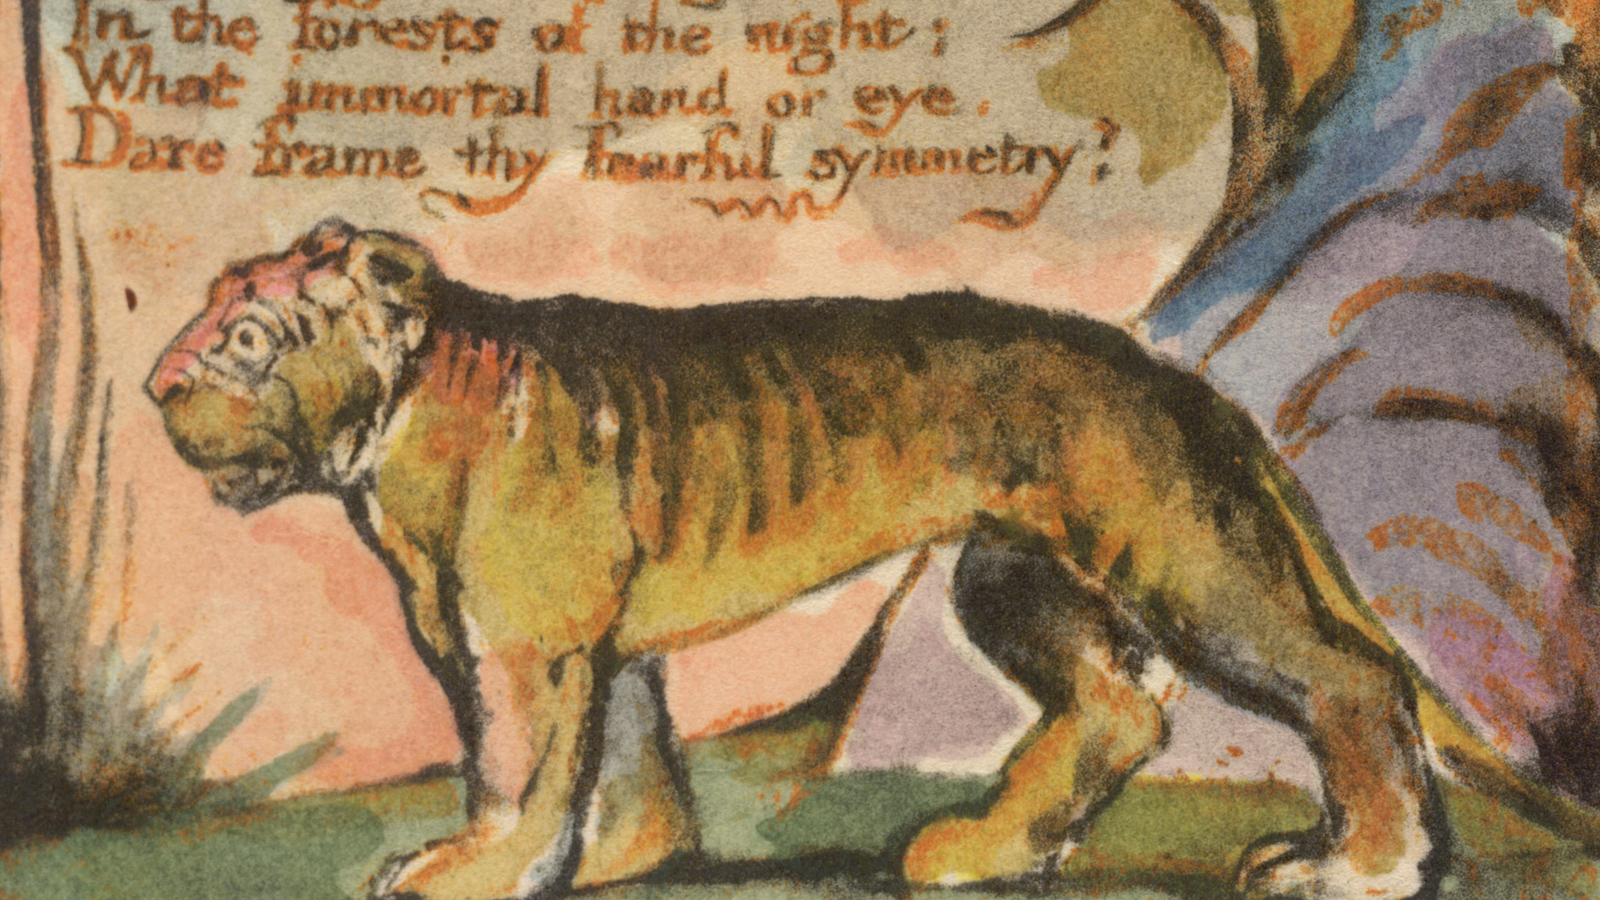 paraphrase the tyger